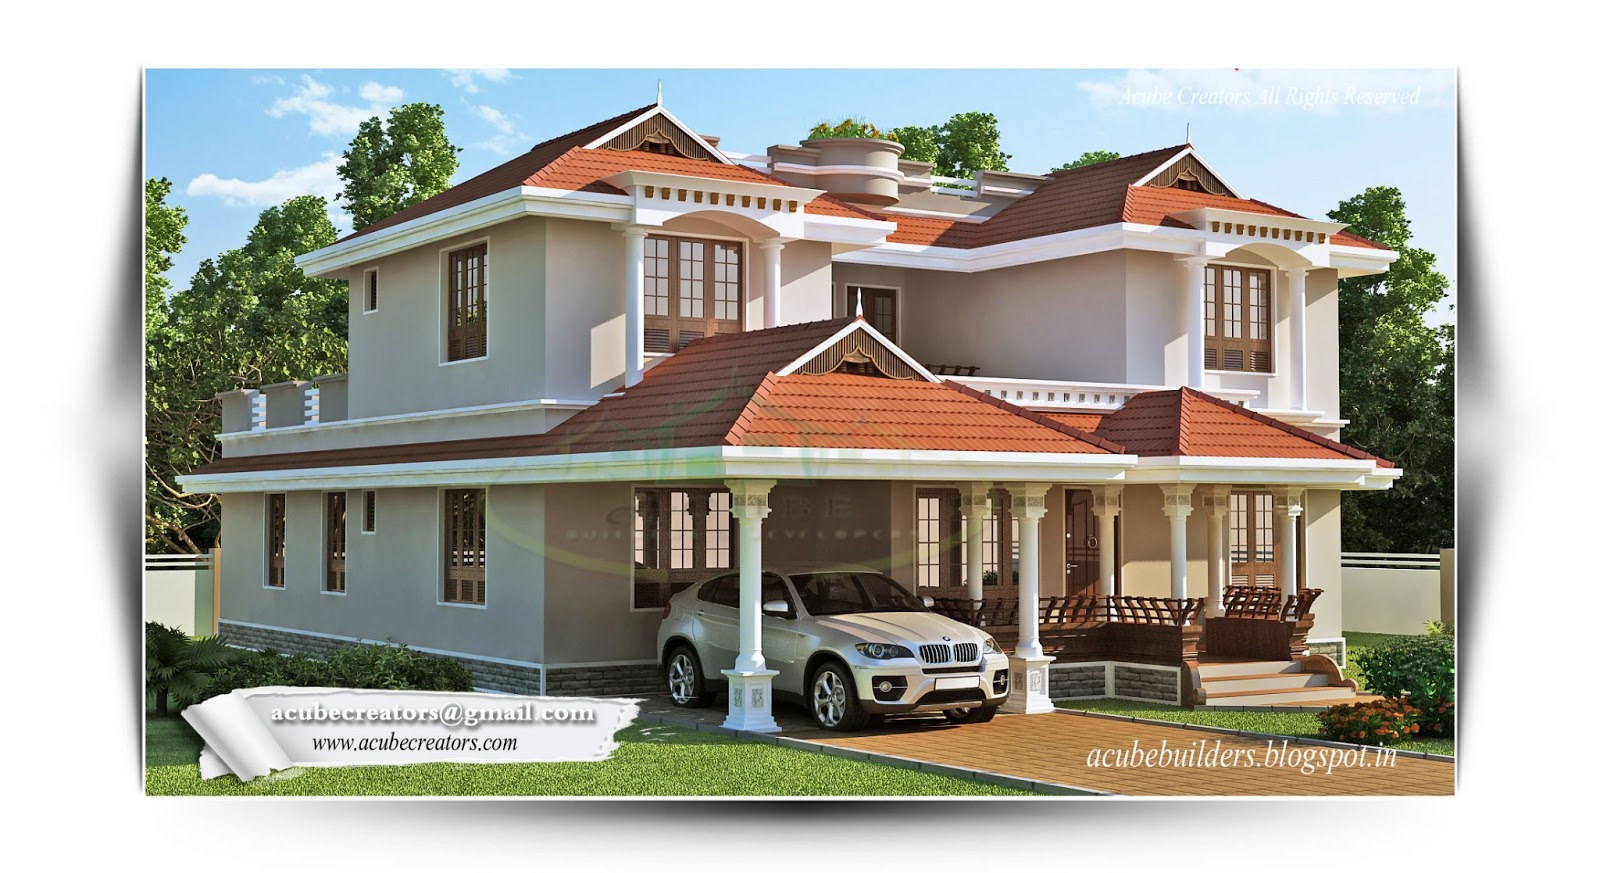 Kerala style home 2835 plan 167 acube builders for Kerala model house plans 1000 sq ft